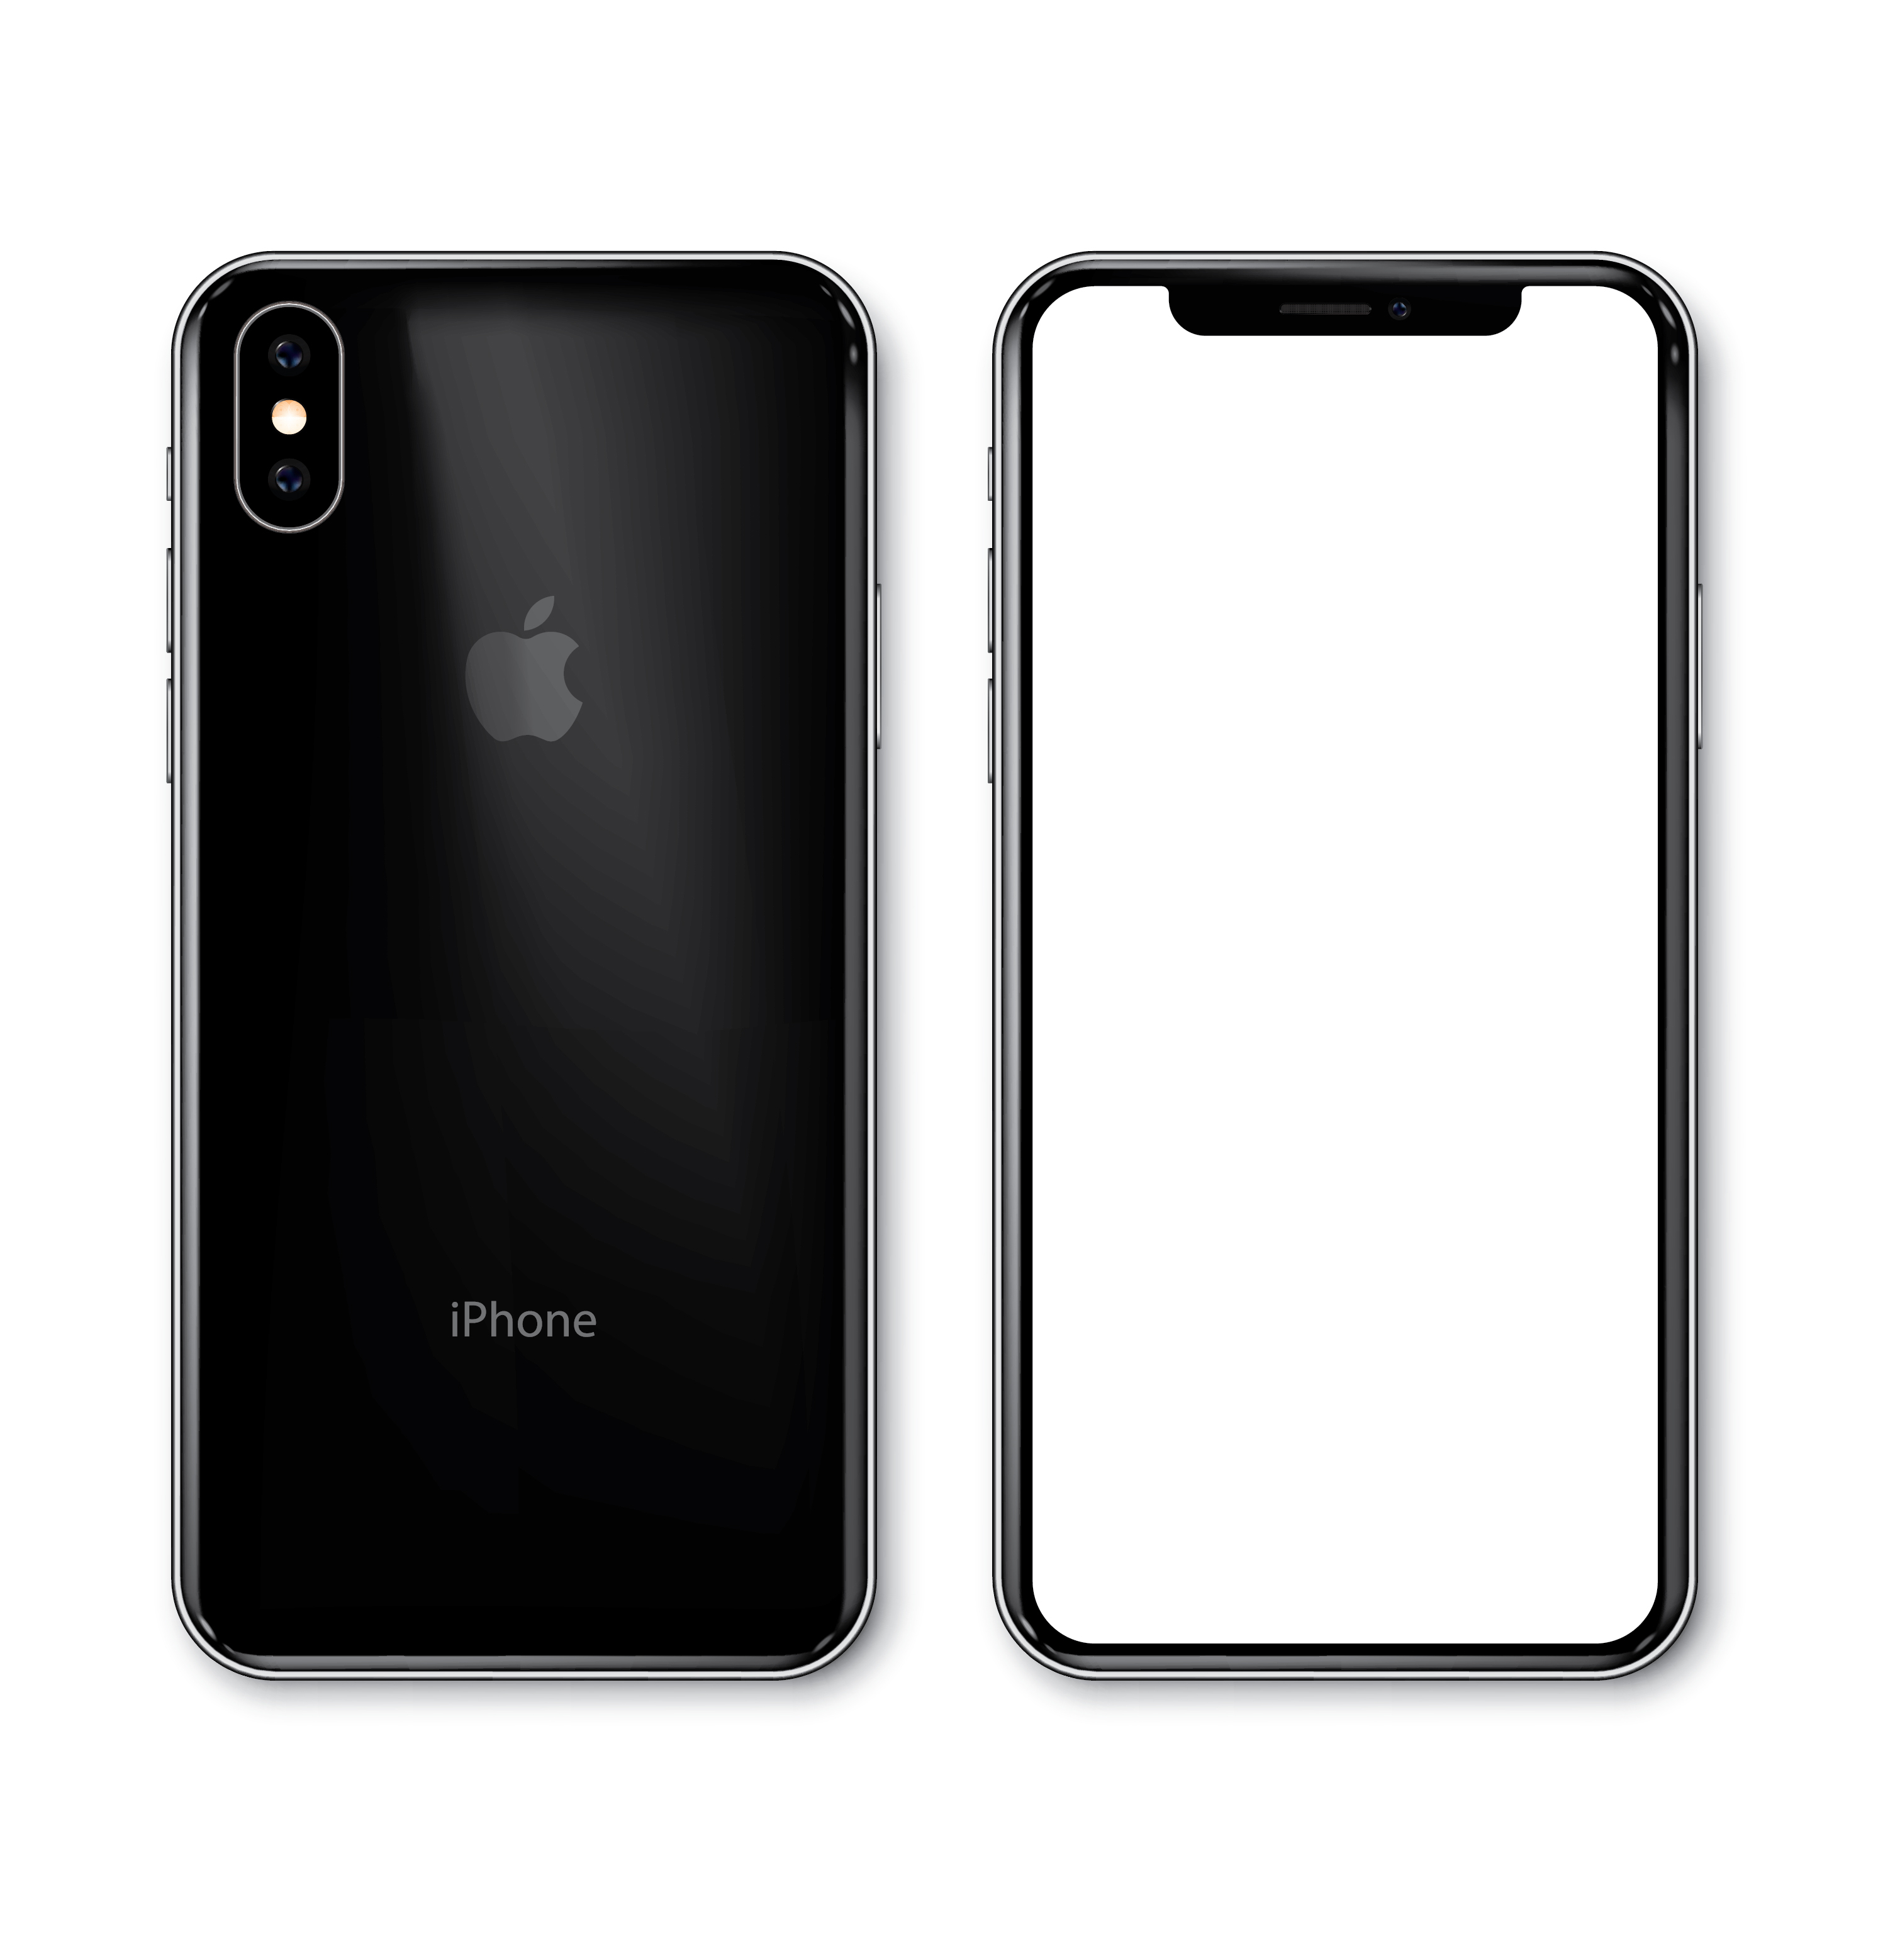 caracteristicas iphone xs, reseña iphone xs, opiniones iphone xs